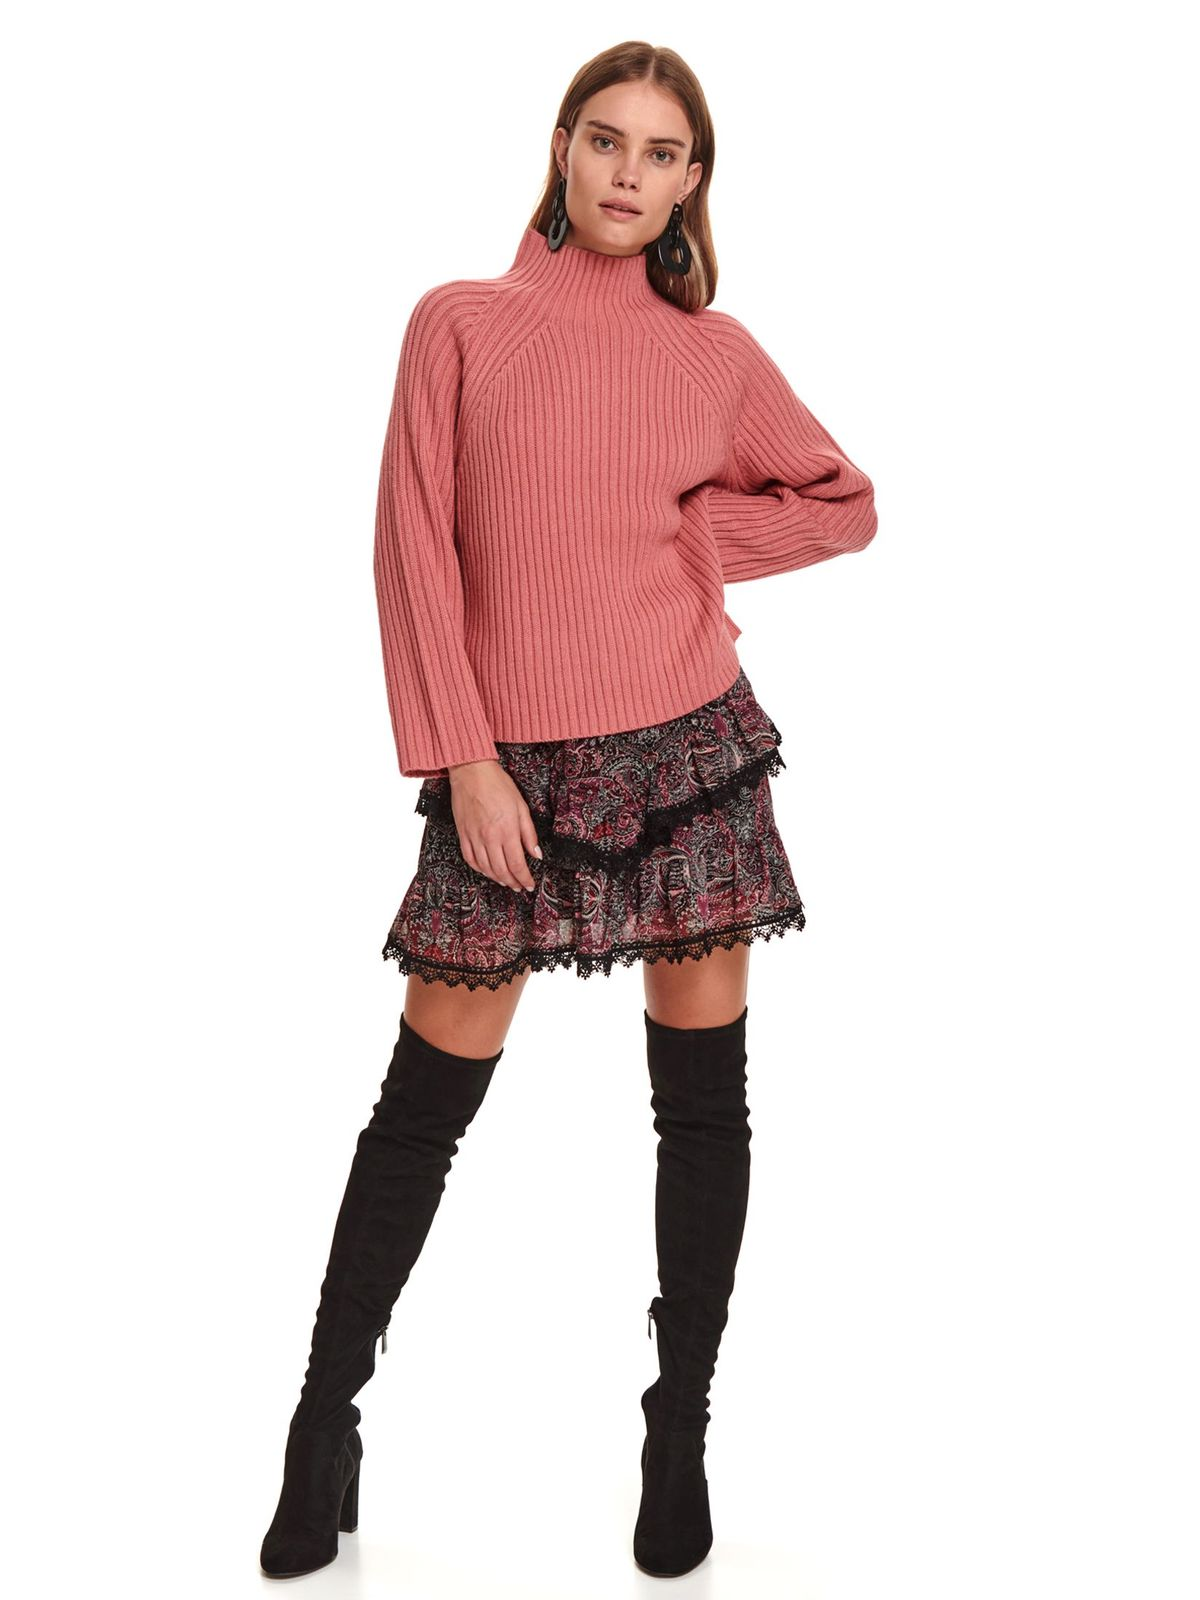 Pink sweater casual flared with turtle neck knitted fabric